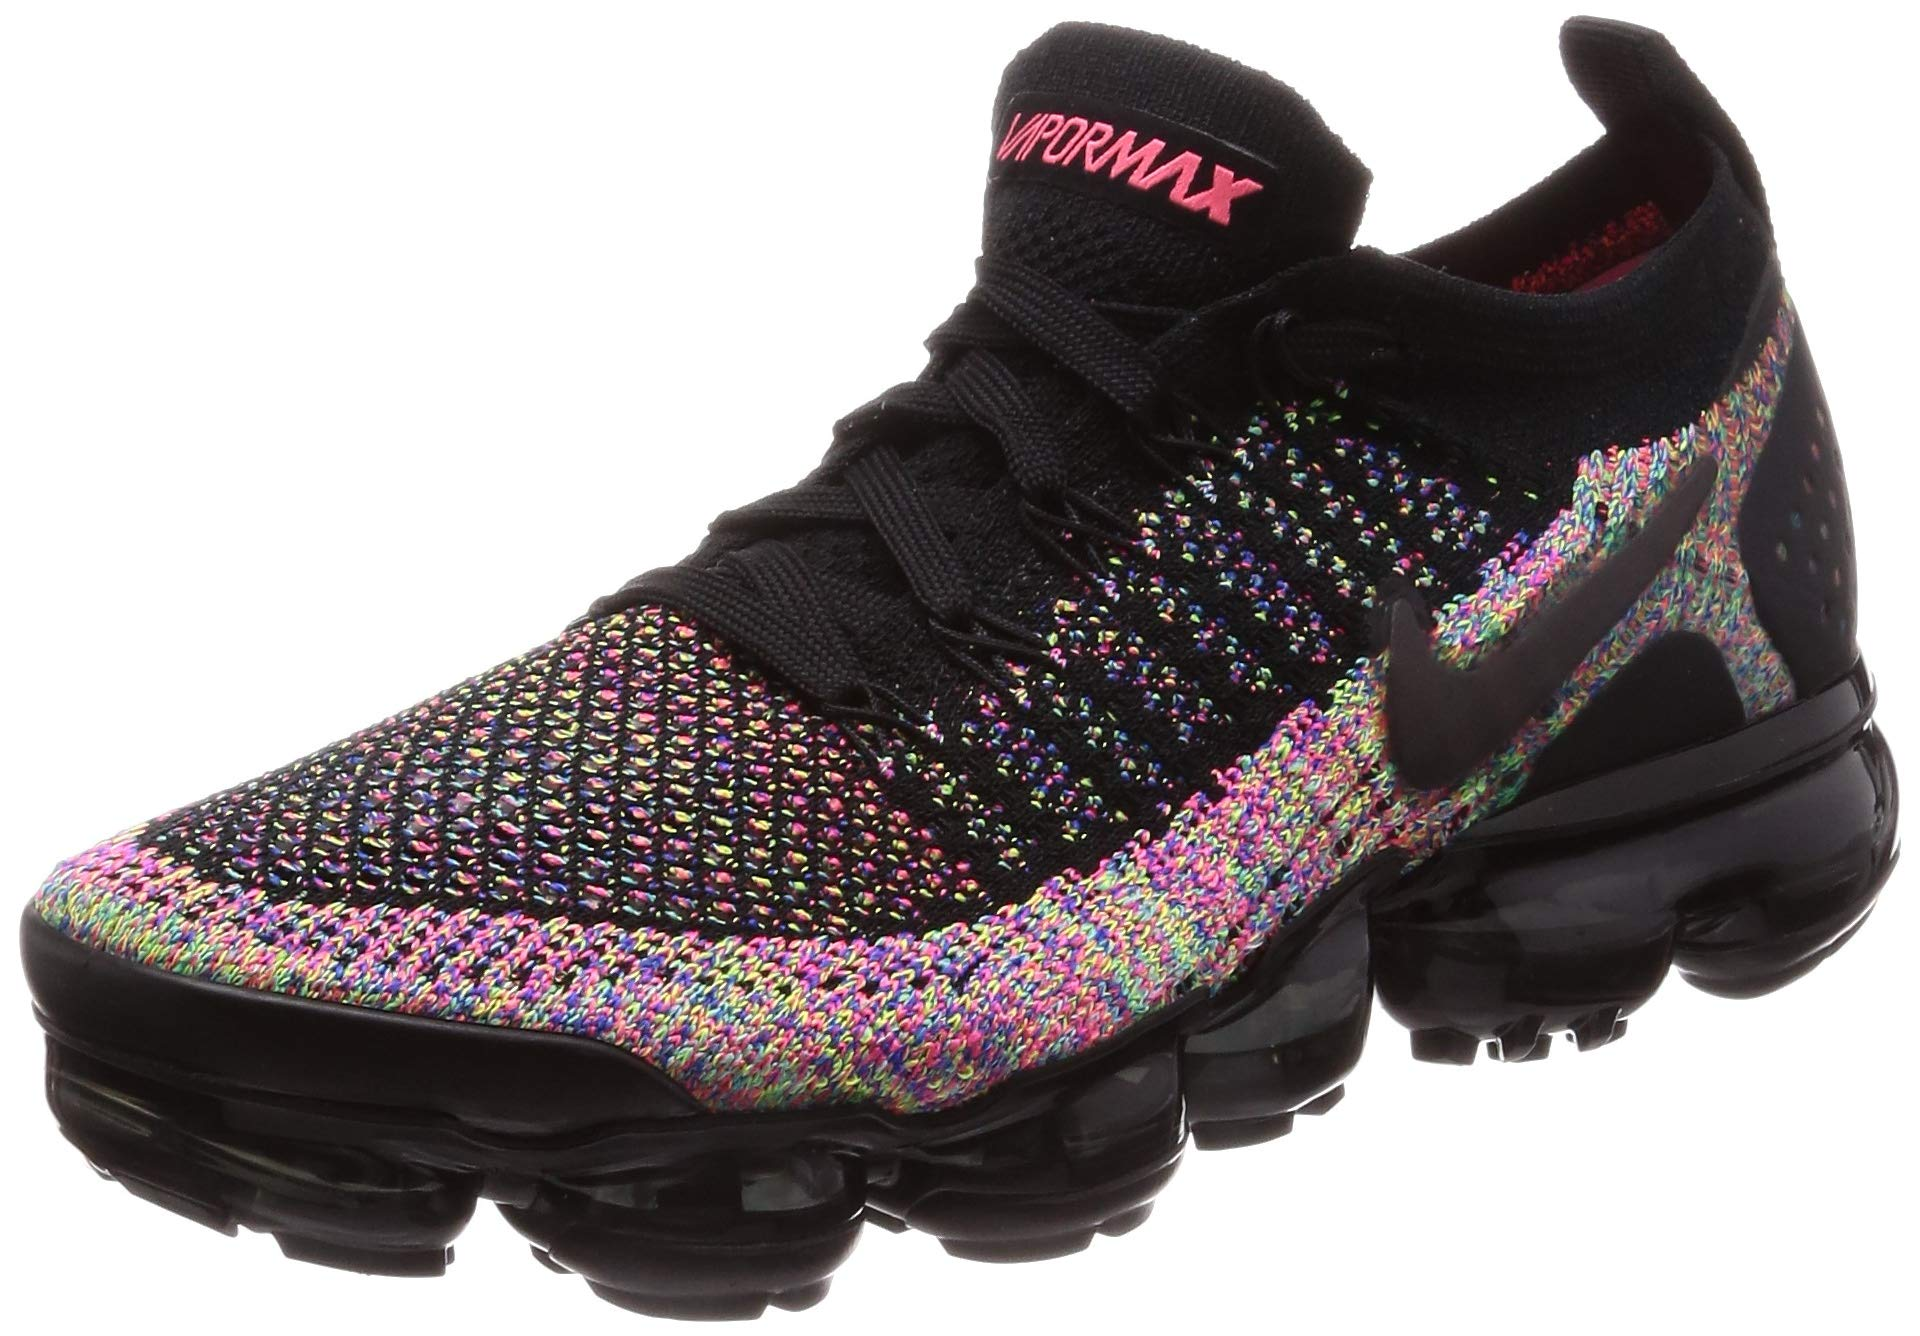 eb60728a8615f Nike Women's W Air Vapormax Flyknit 2 Track & Field Shoes